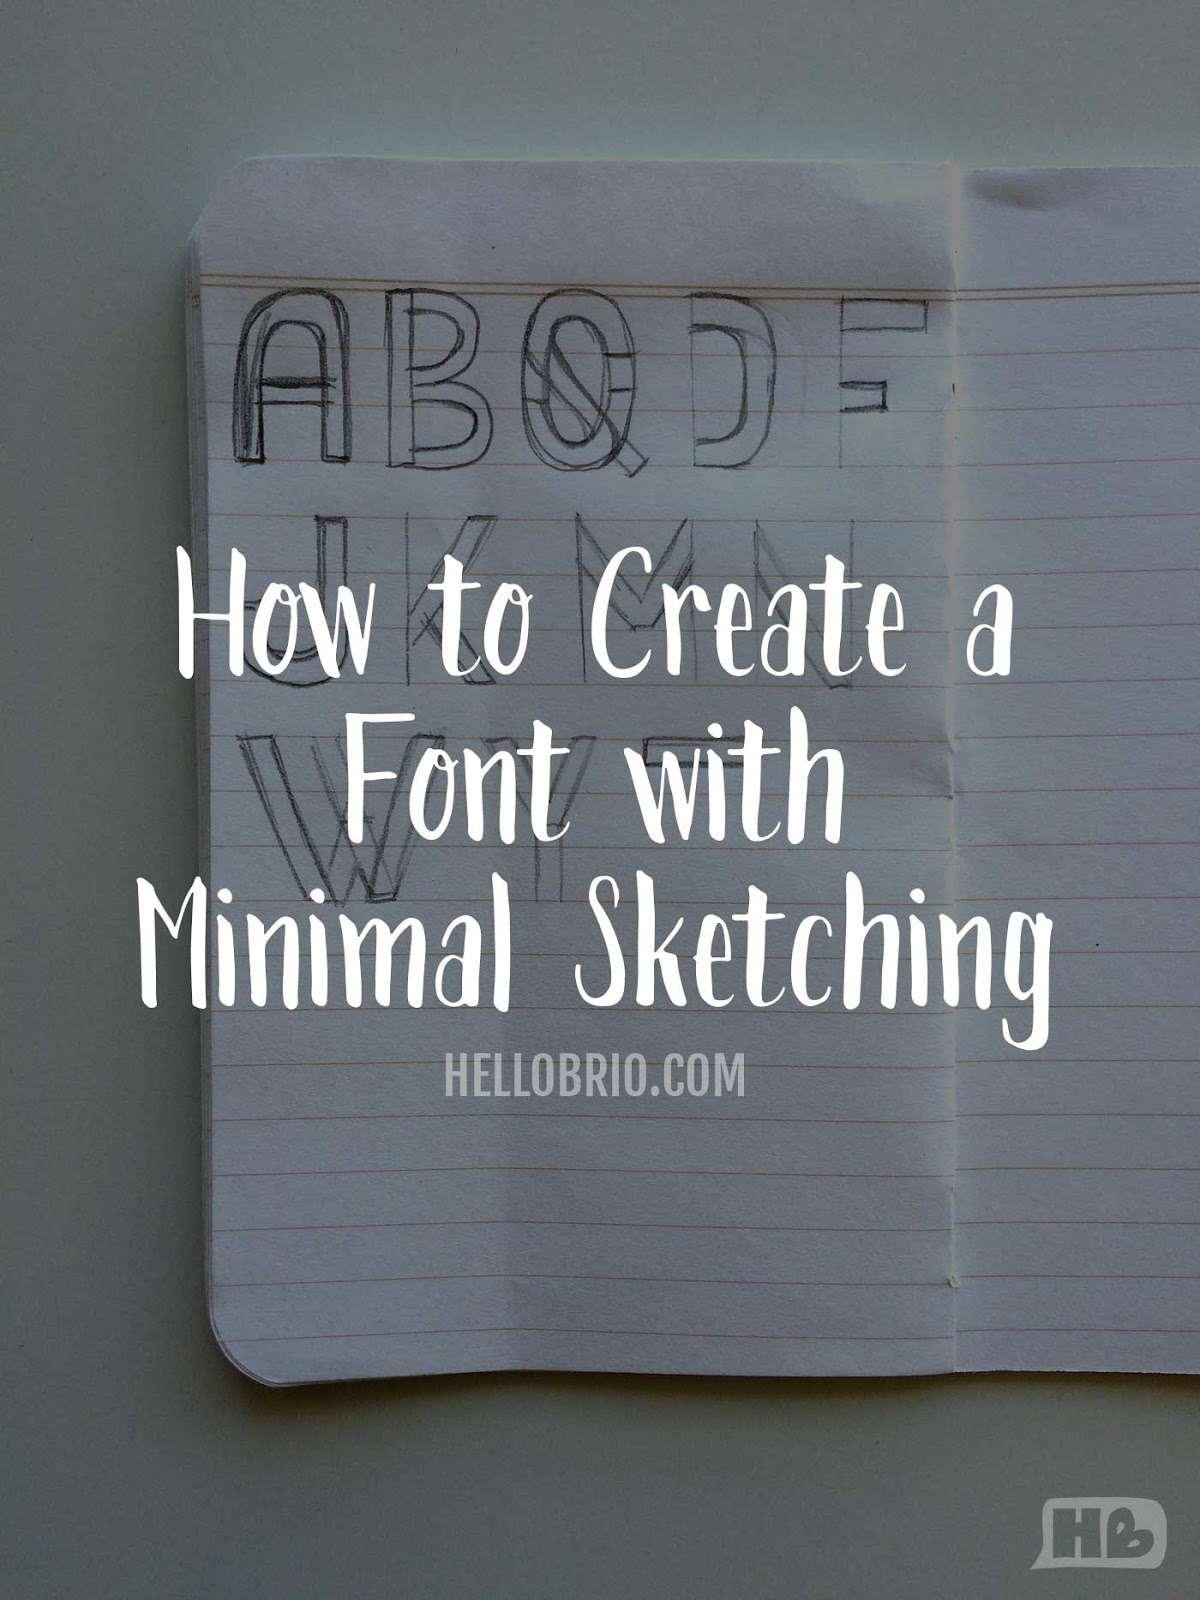 How to create a cohesive font with minimal sketching